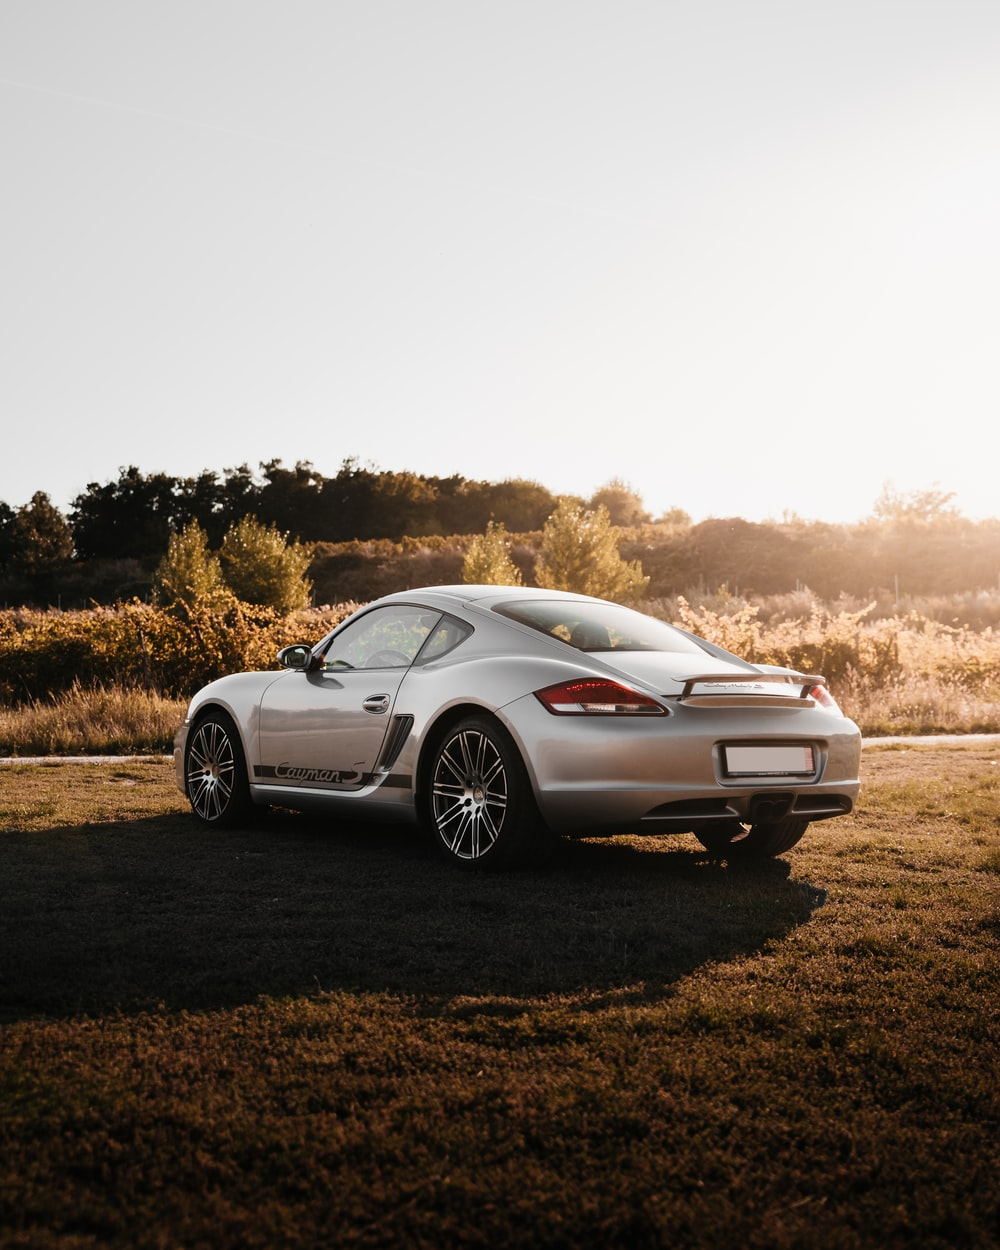 white porsche 911 on brown field during daytime